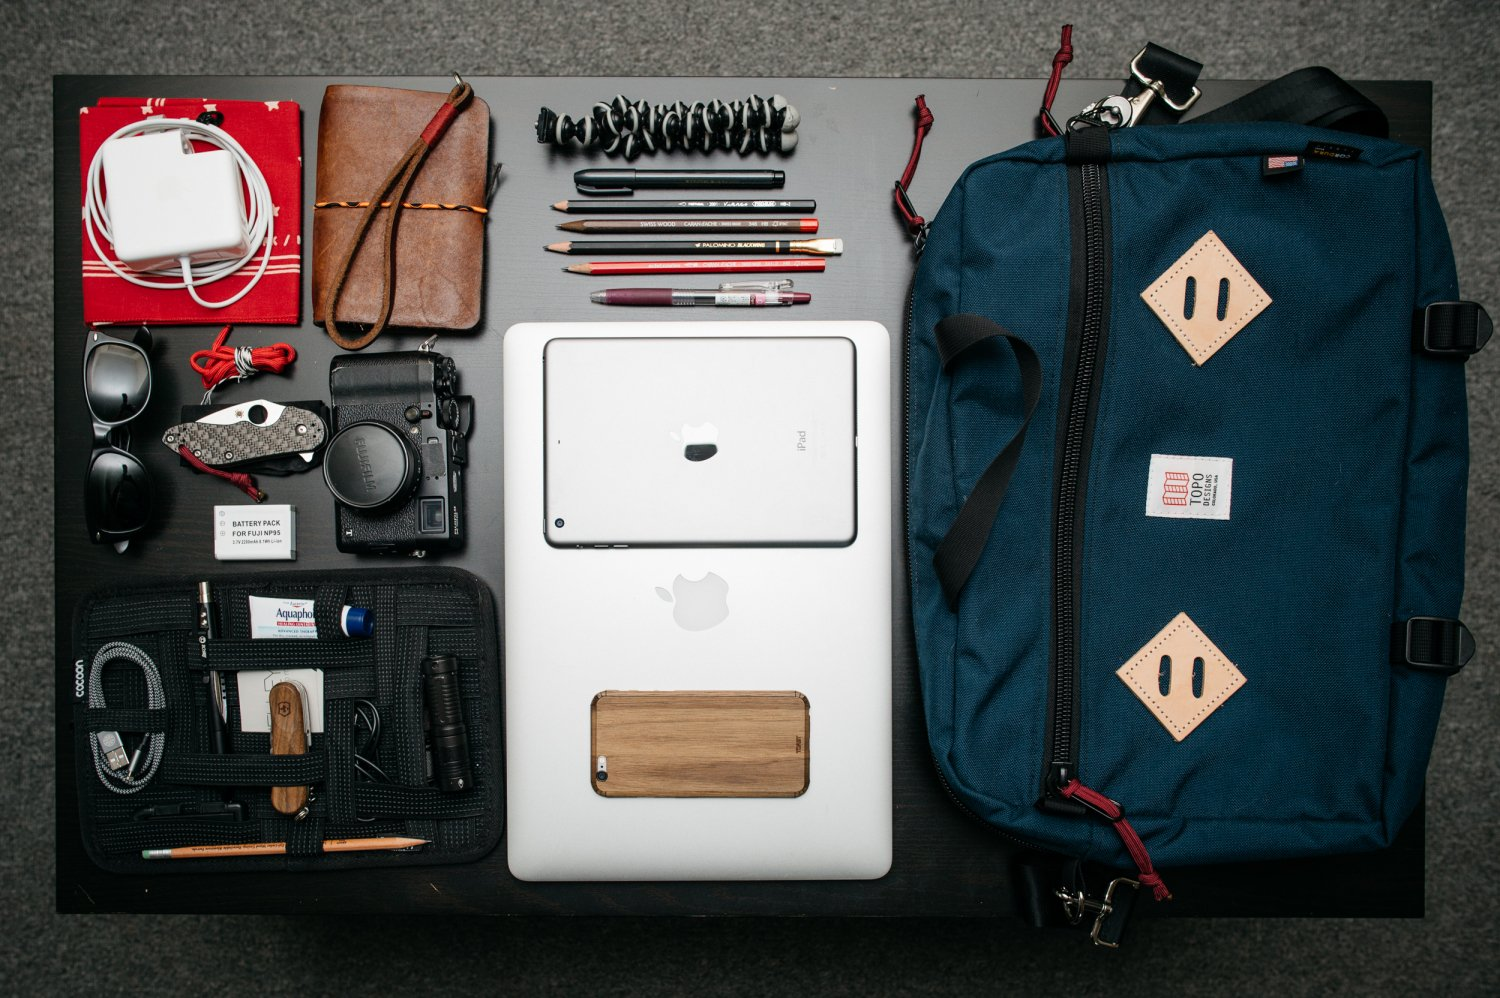 The 10 Best Mobile Office EDC Essentials for 2020